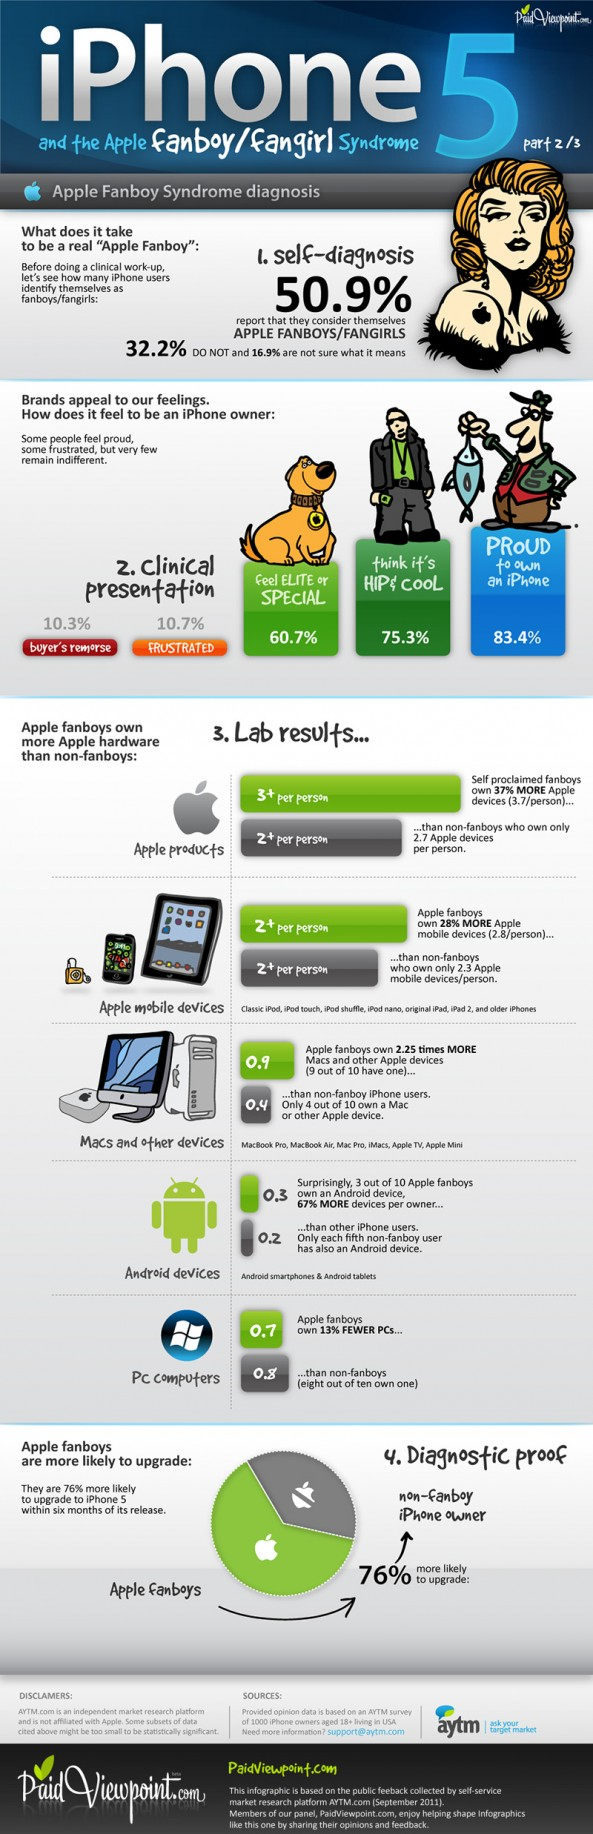 Are You An Apple Fanboy? [INFOGRAPHIC]